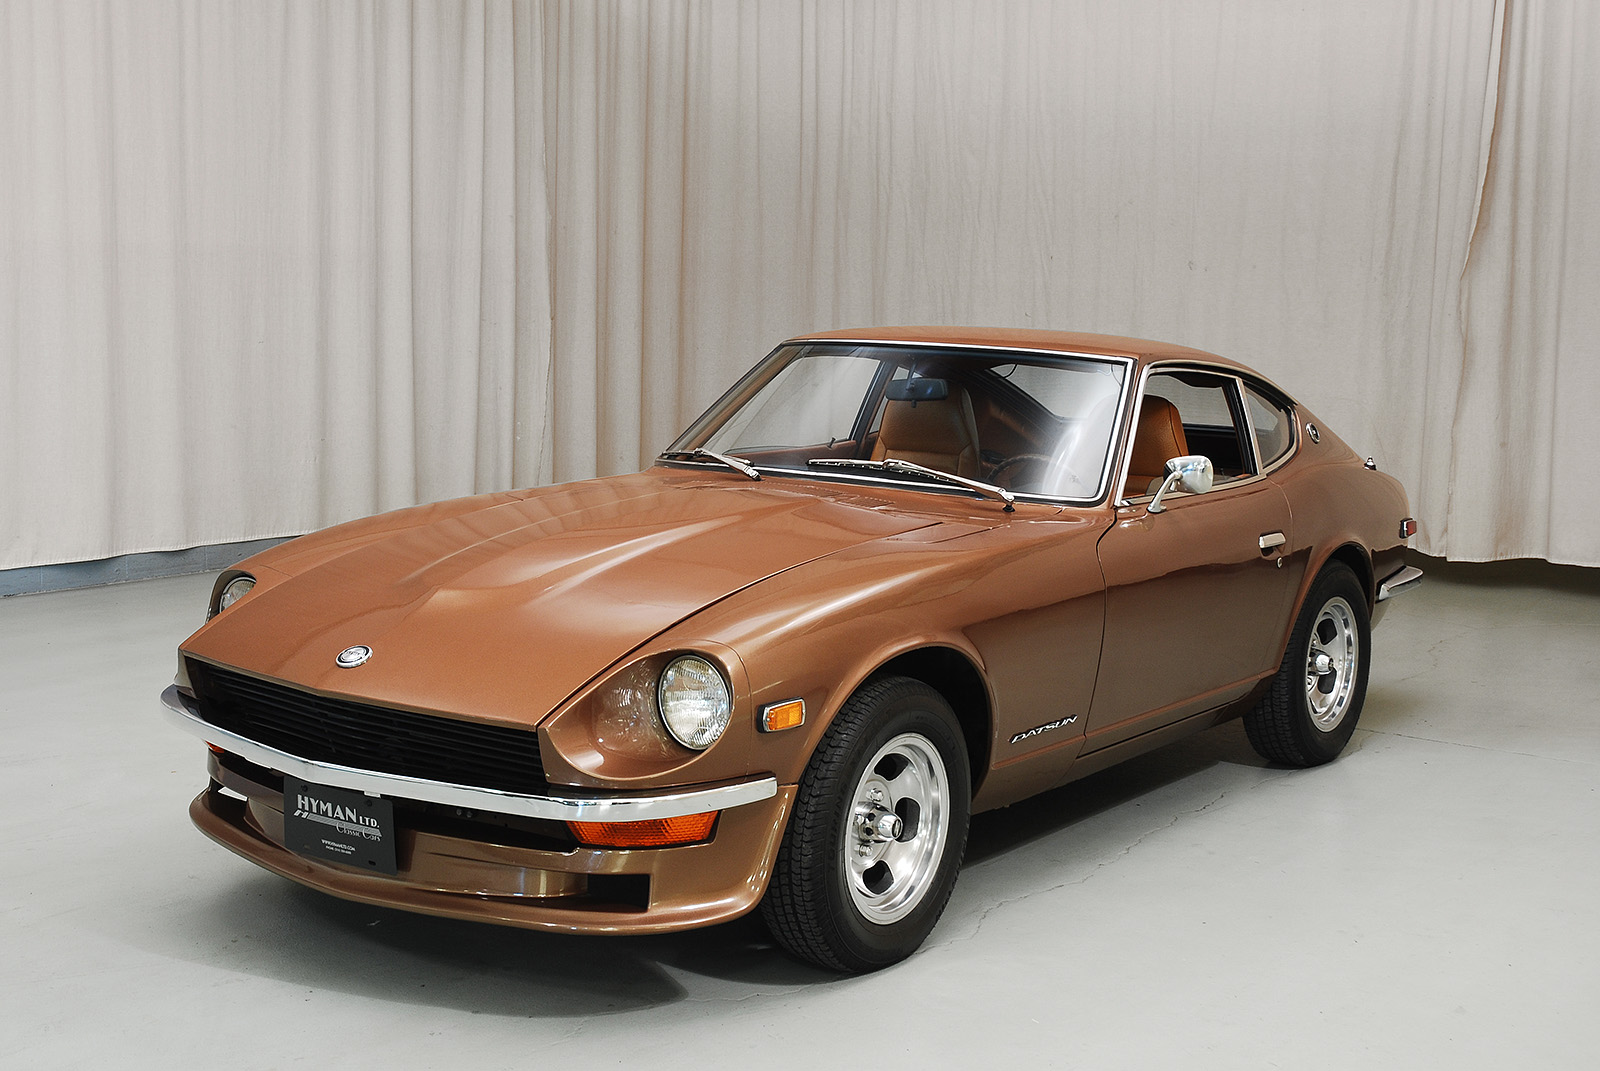 1973 datsun 240z hyman ltd classic cars. Black Bedroom Furniture Sets. Home Design Ideas